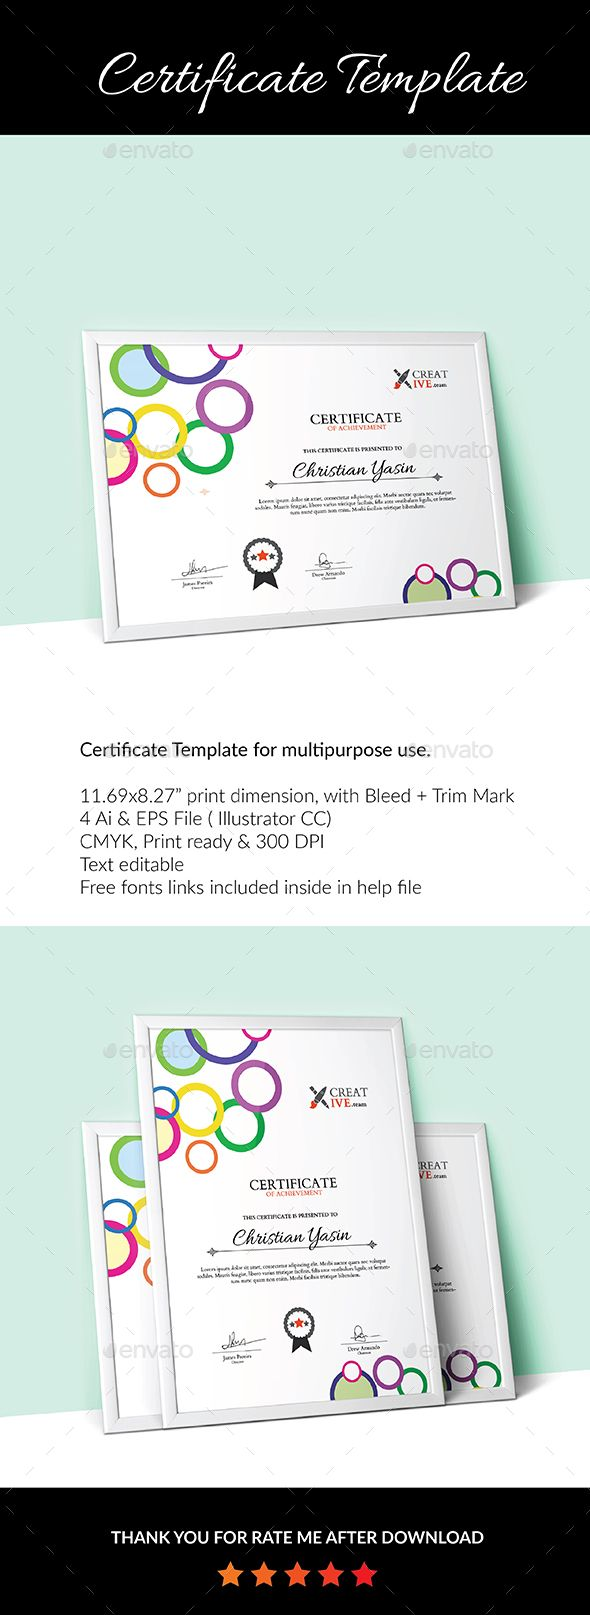 Certificate Template_04 - Certificate Template Vector EPS, Vector AI. Download here: http://graphicriver.net/item/certificate-template_04/15205925?s_rank=27&ref=yinkira